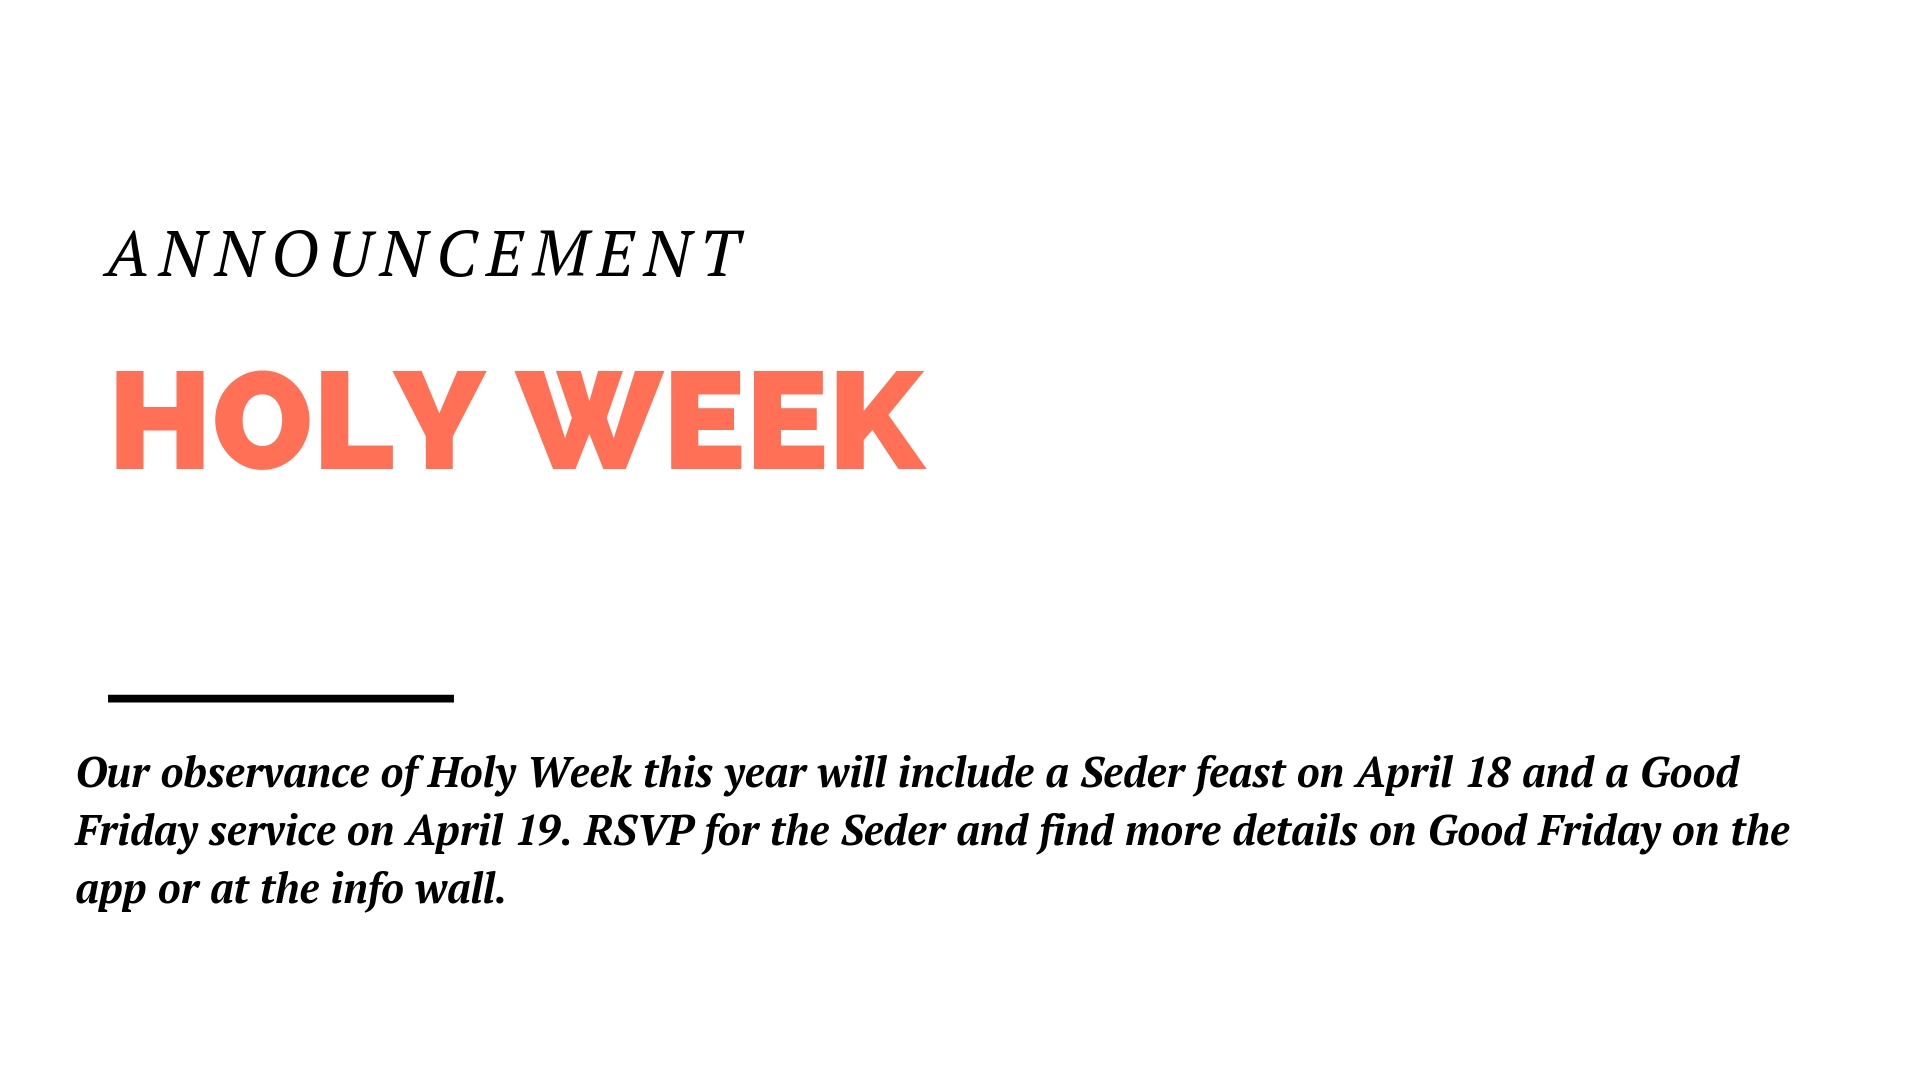 Our observance of Holy Week this year will include a Seder feast on April 18 and a Good Friday service on April 19. RSVP for the Seder and find more details on Good Friday on the app or at the info wall.